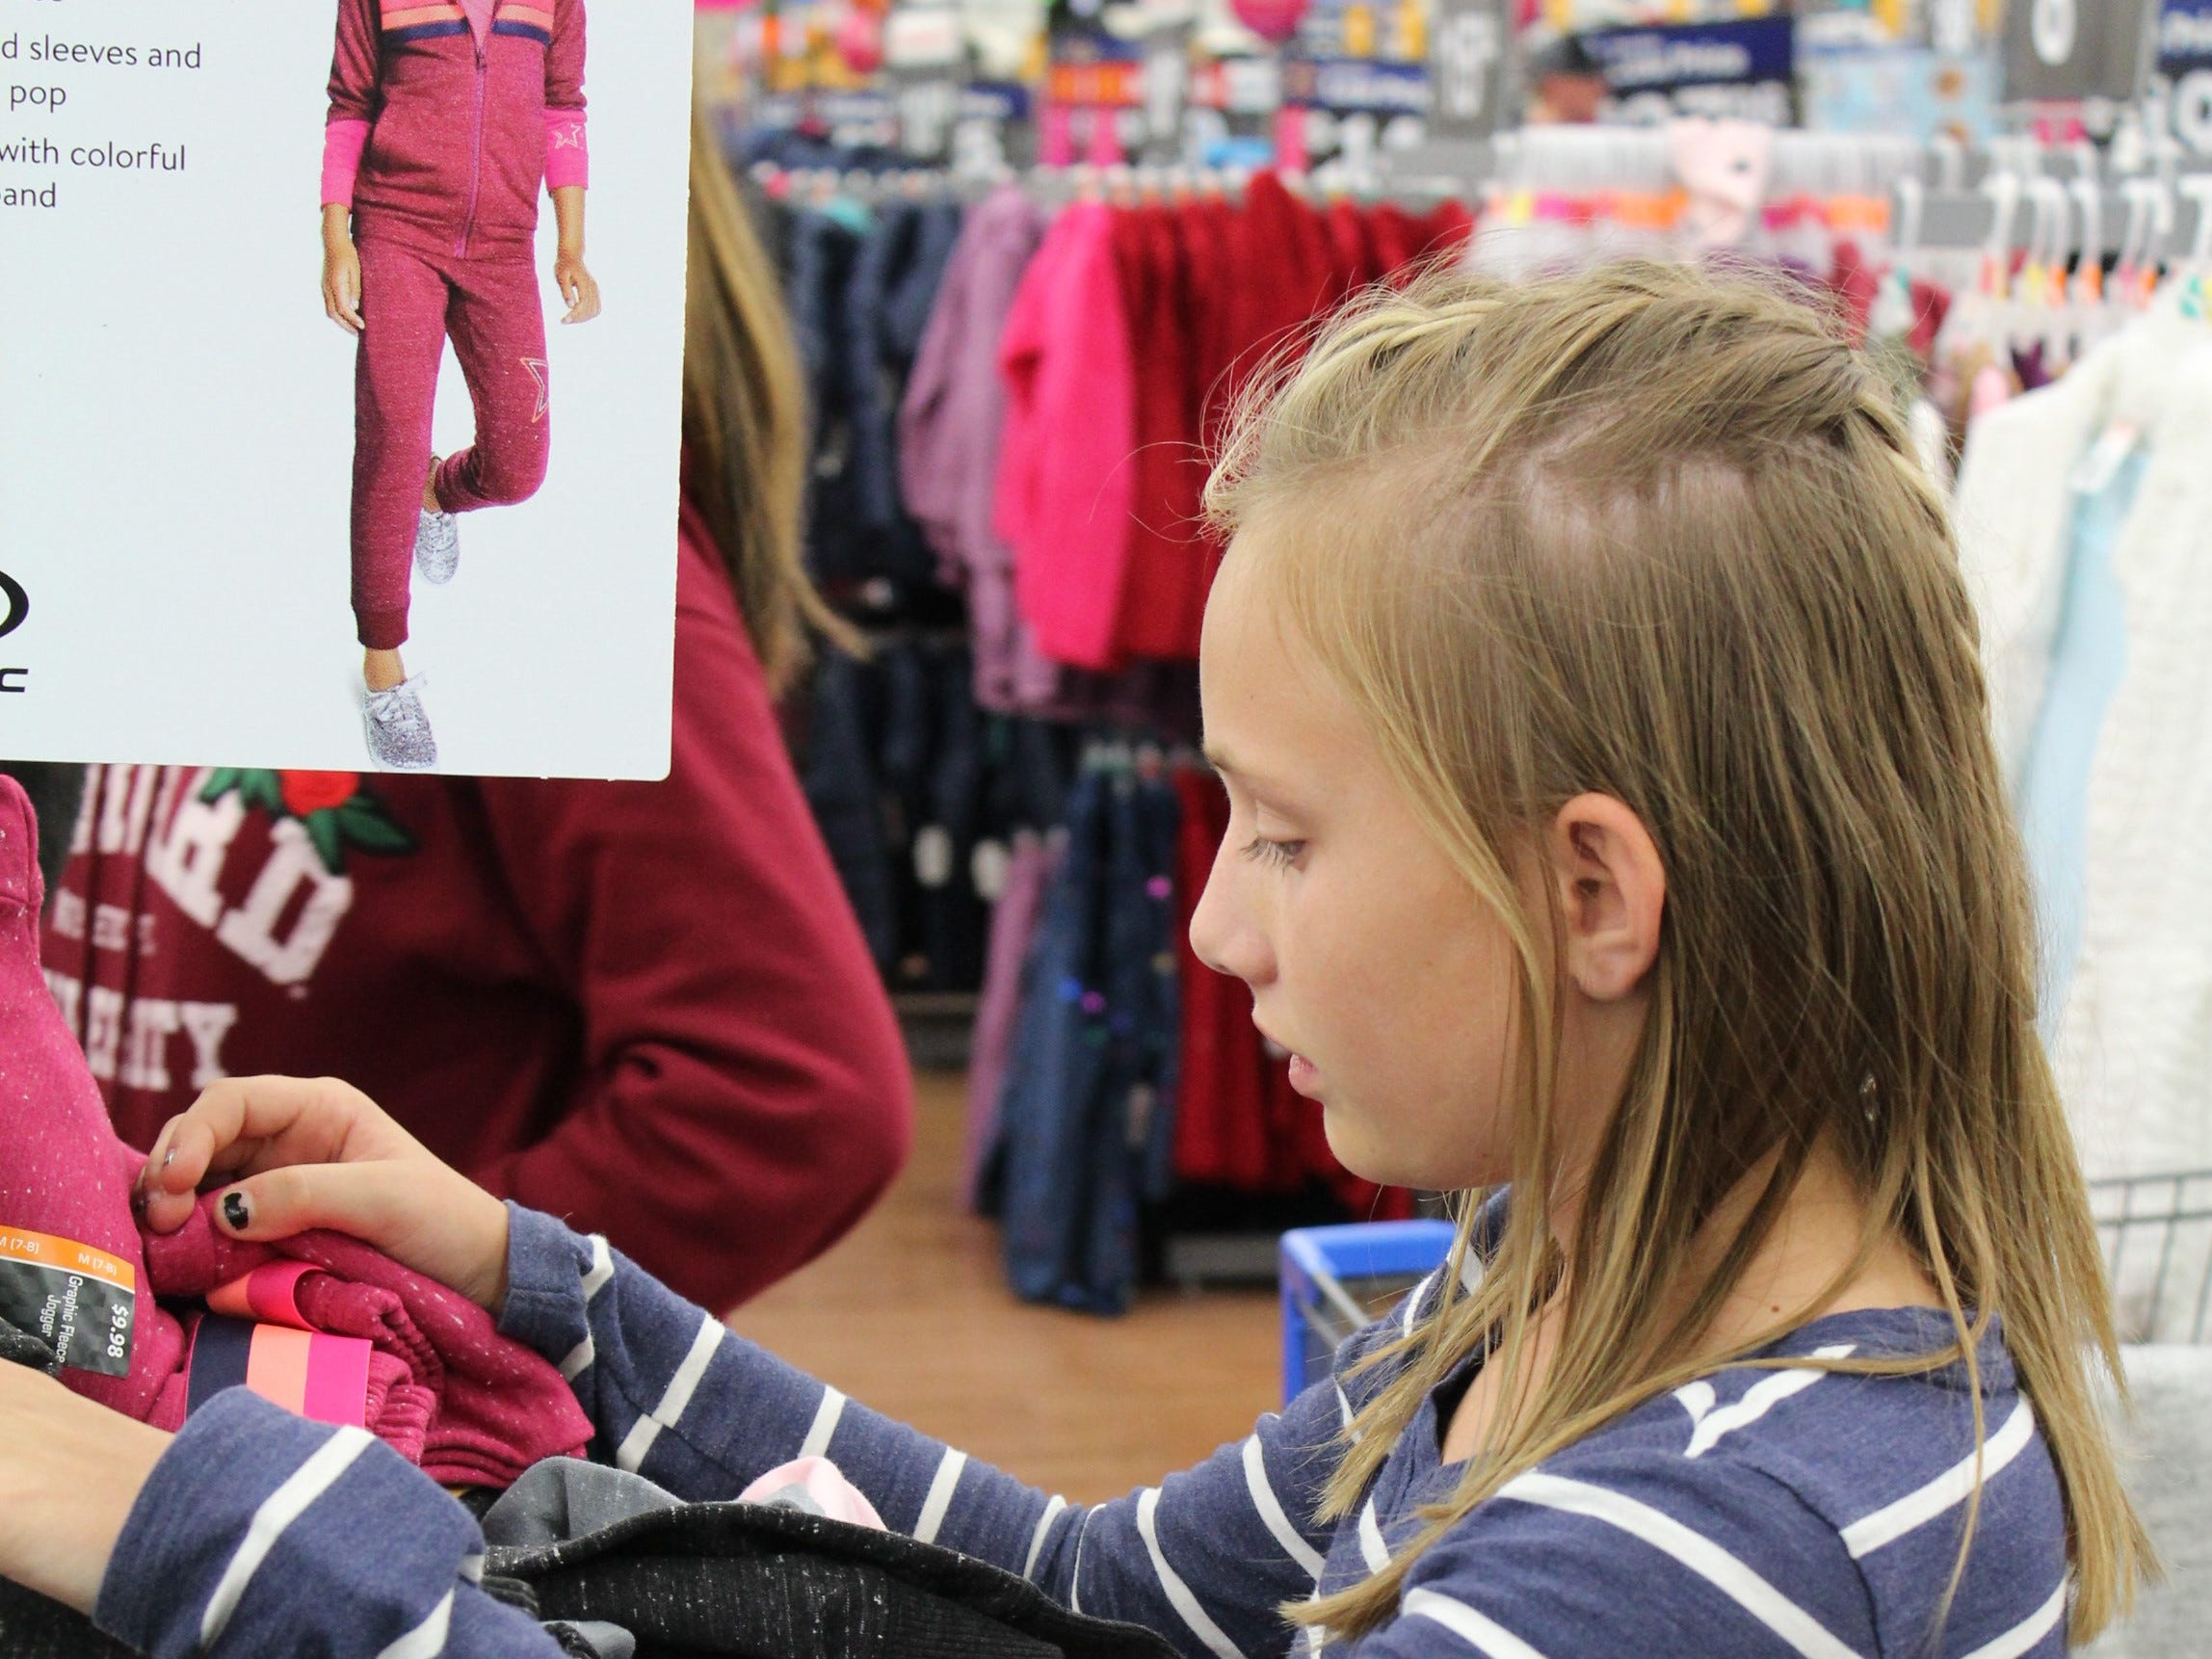 Demi Durham searches for her size during a school shopping spree in Hurricane on Oct. 16, 2018.